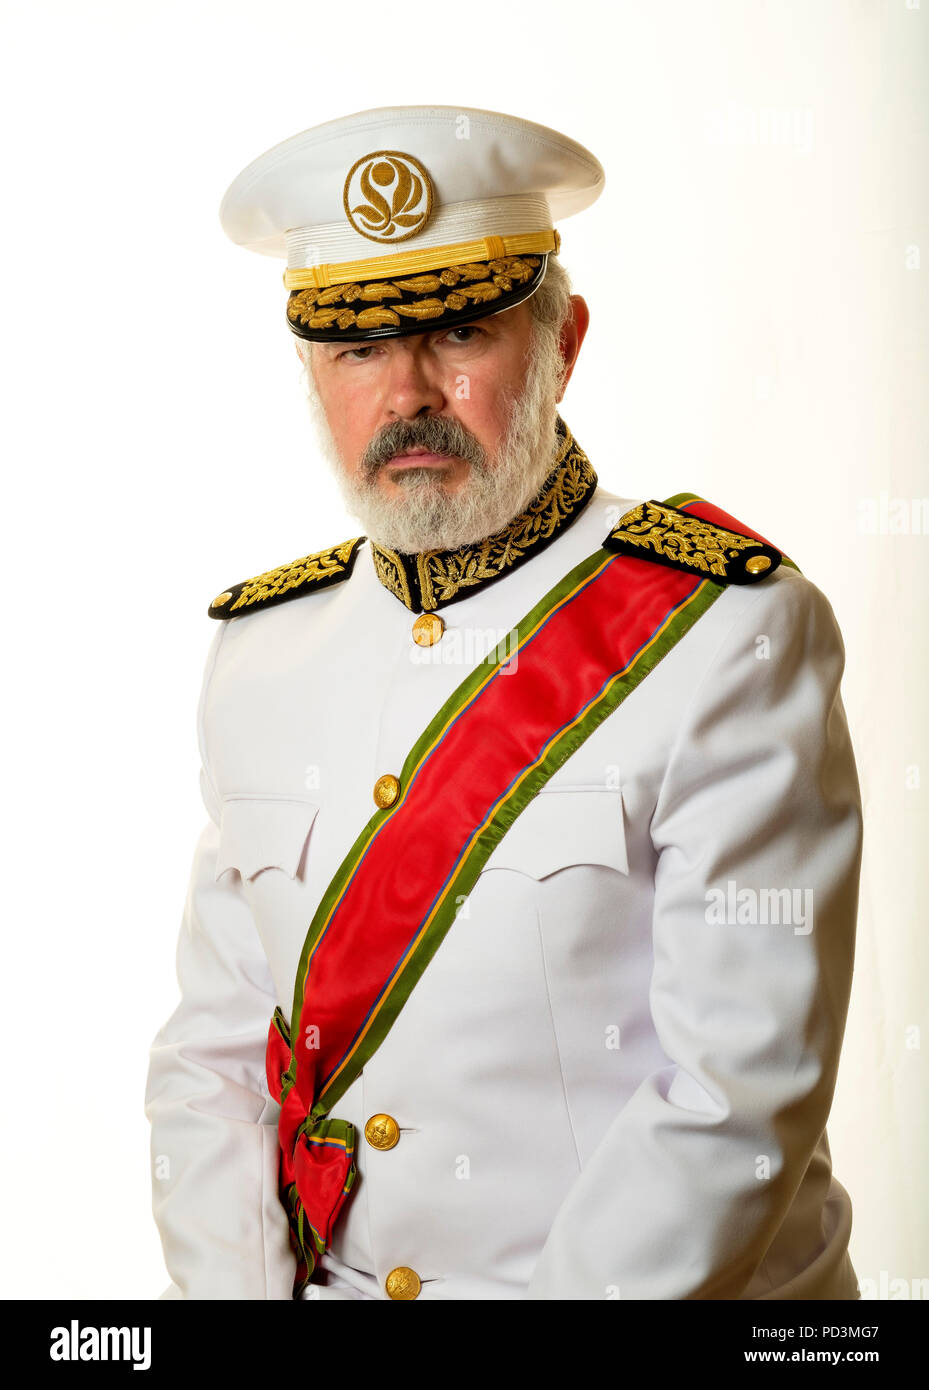 Fictional character : Governor Babala with white full uniform, red honorific sash and officer's cap, - Stock Image